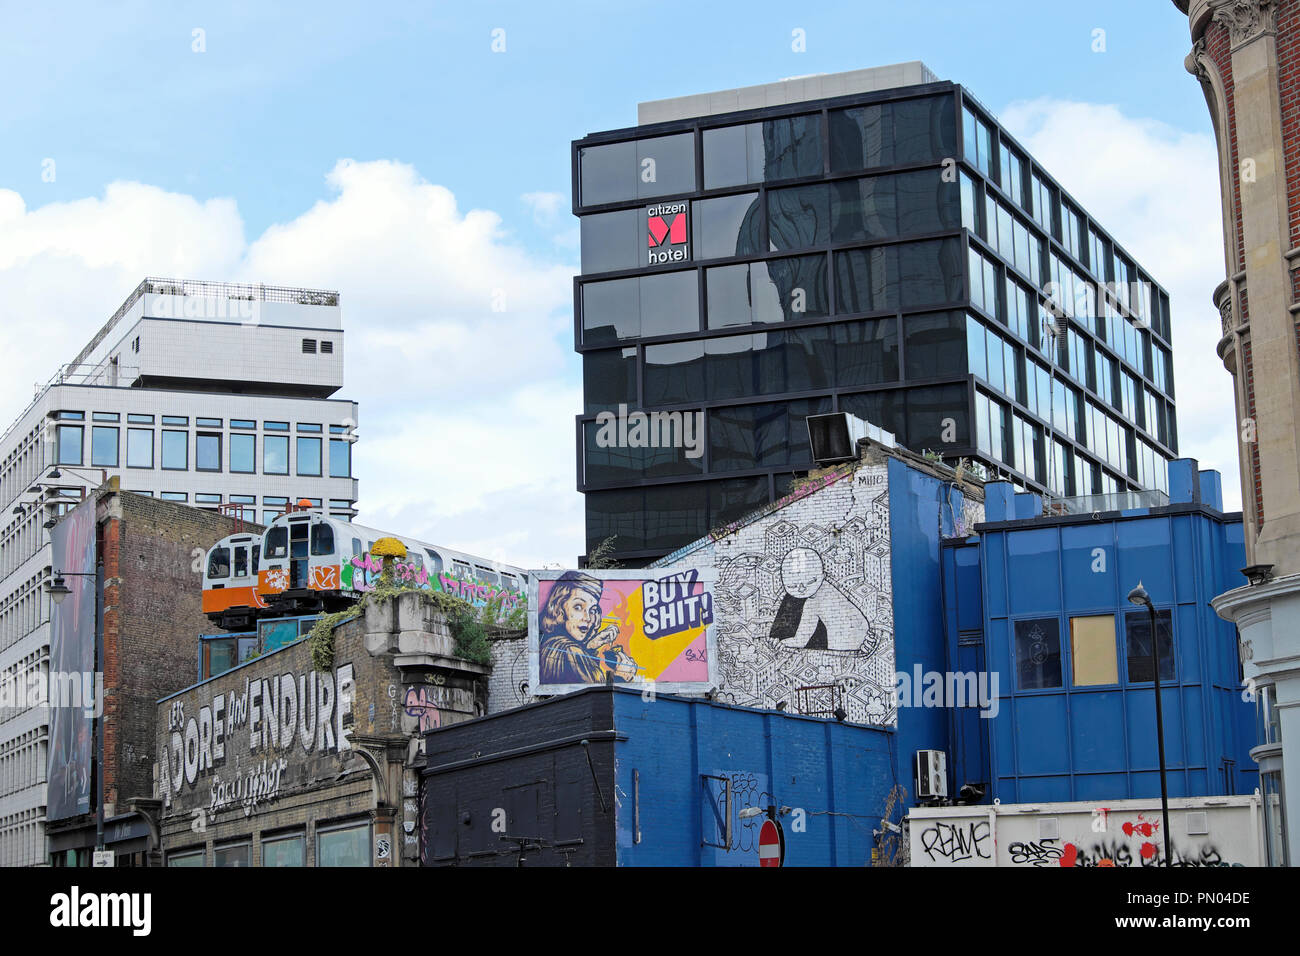 'Let's Adore and Endure Each Other' graffiti on wall with train carriages on roof Great Eastern Street art in Shoreditch East London UK  KATHY DEWITT - Stock Image